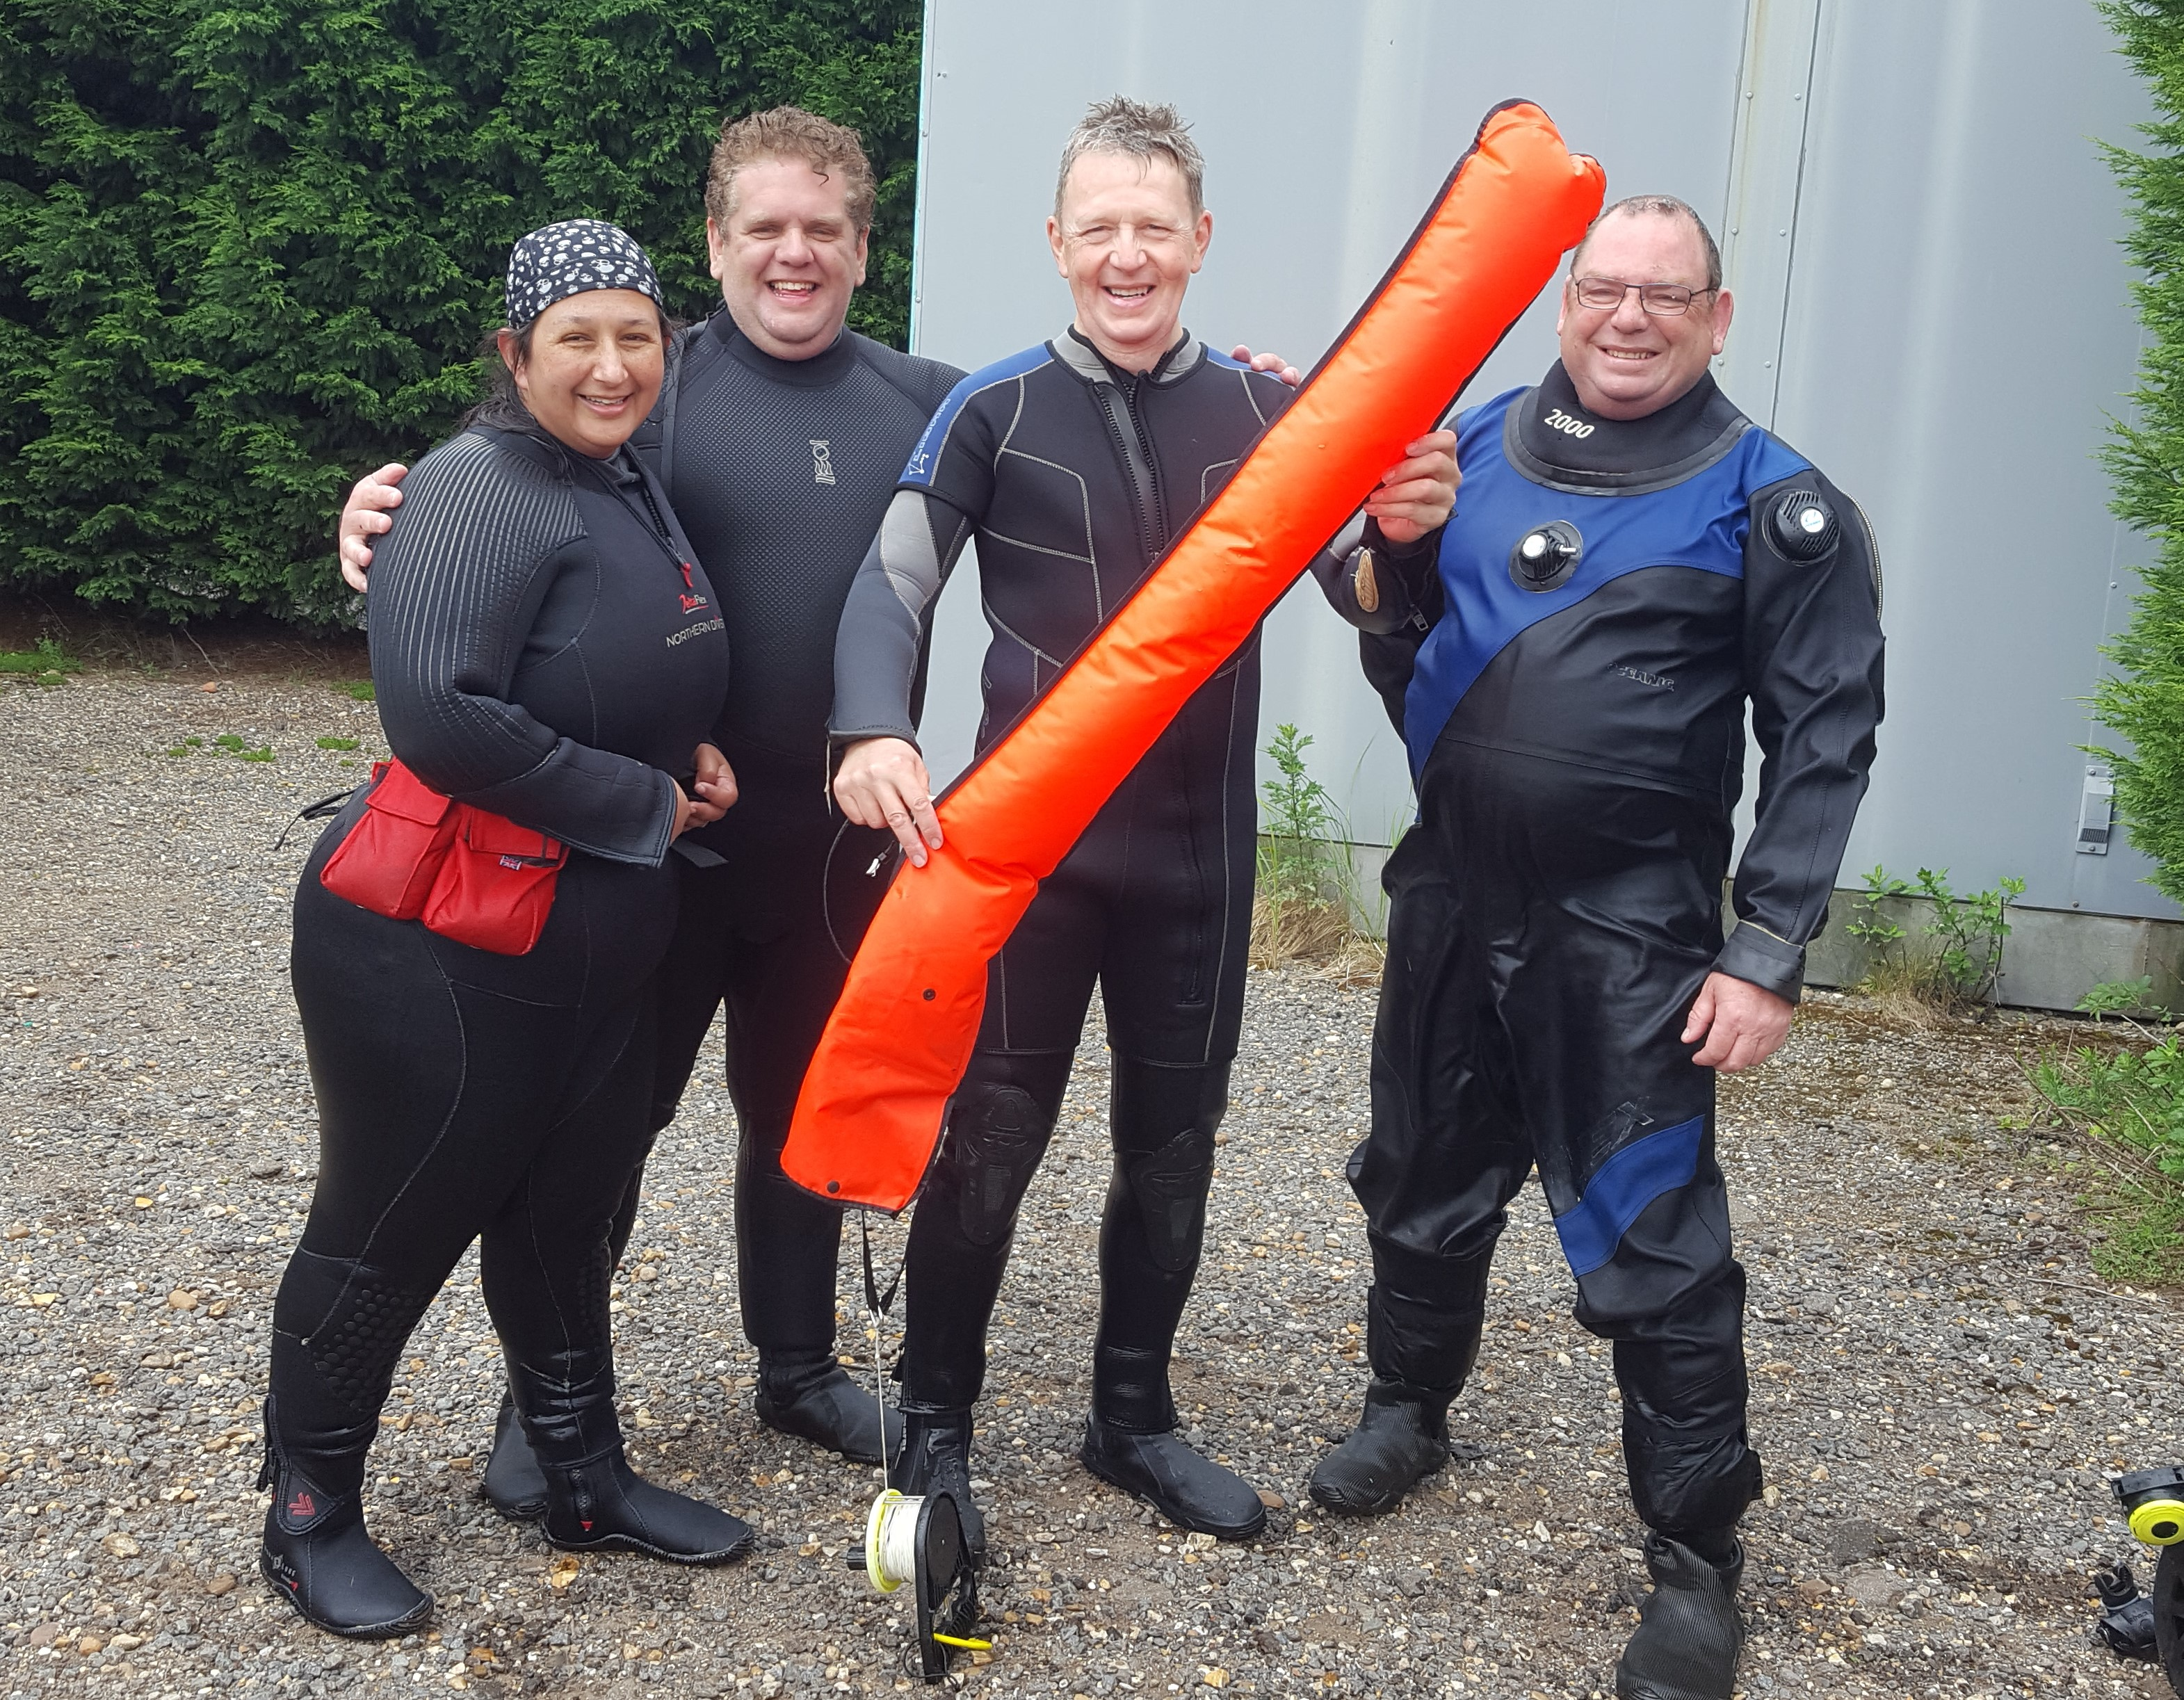 padi advanced course delayed surface marker buoy (DSMB) course